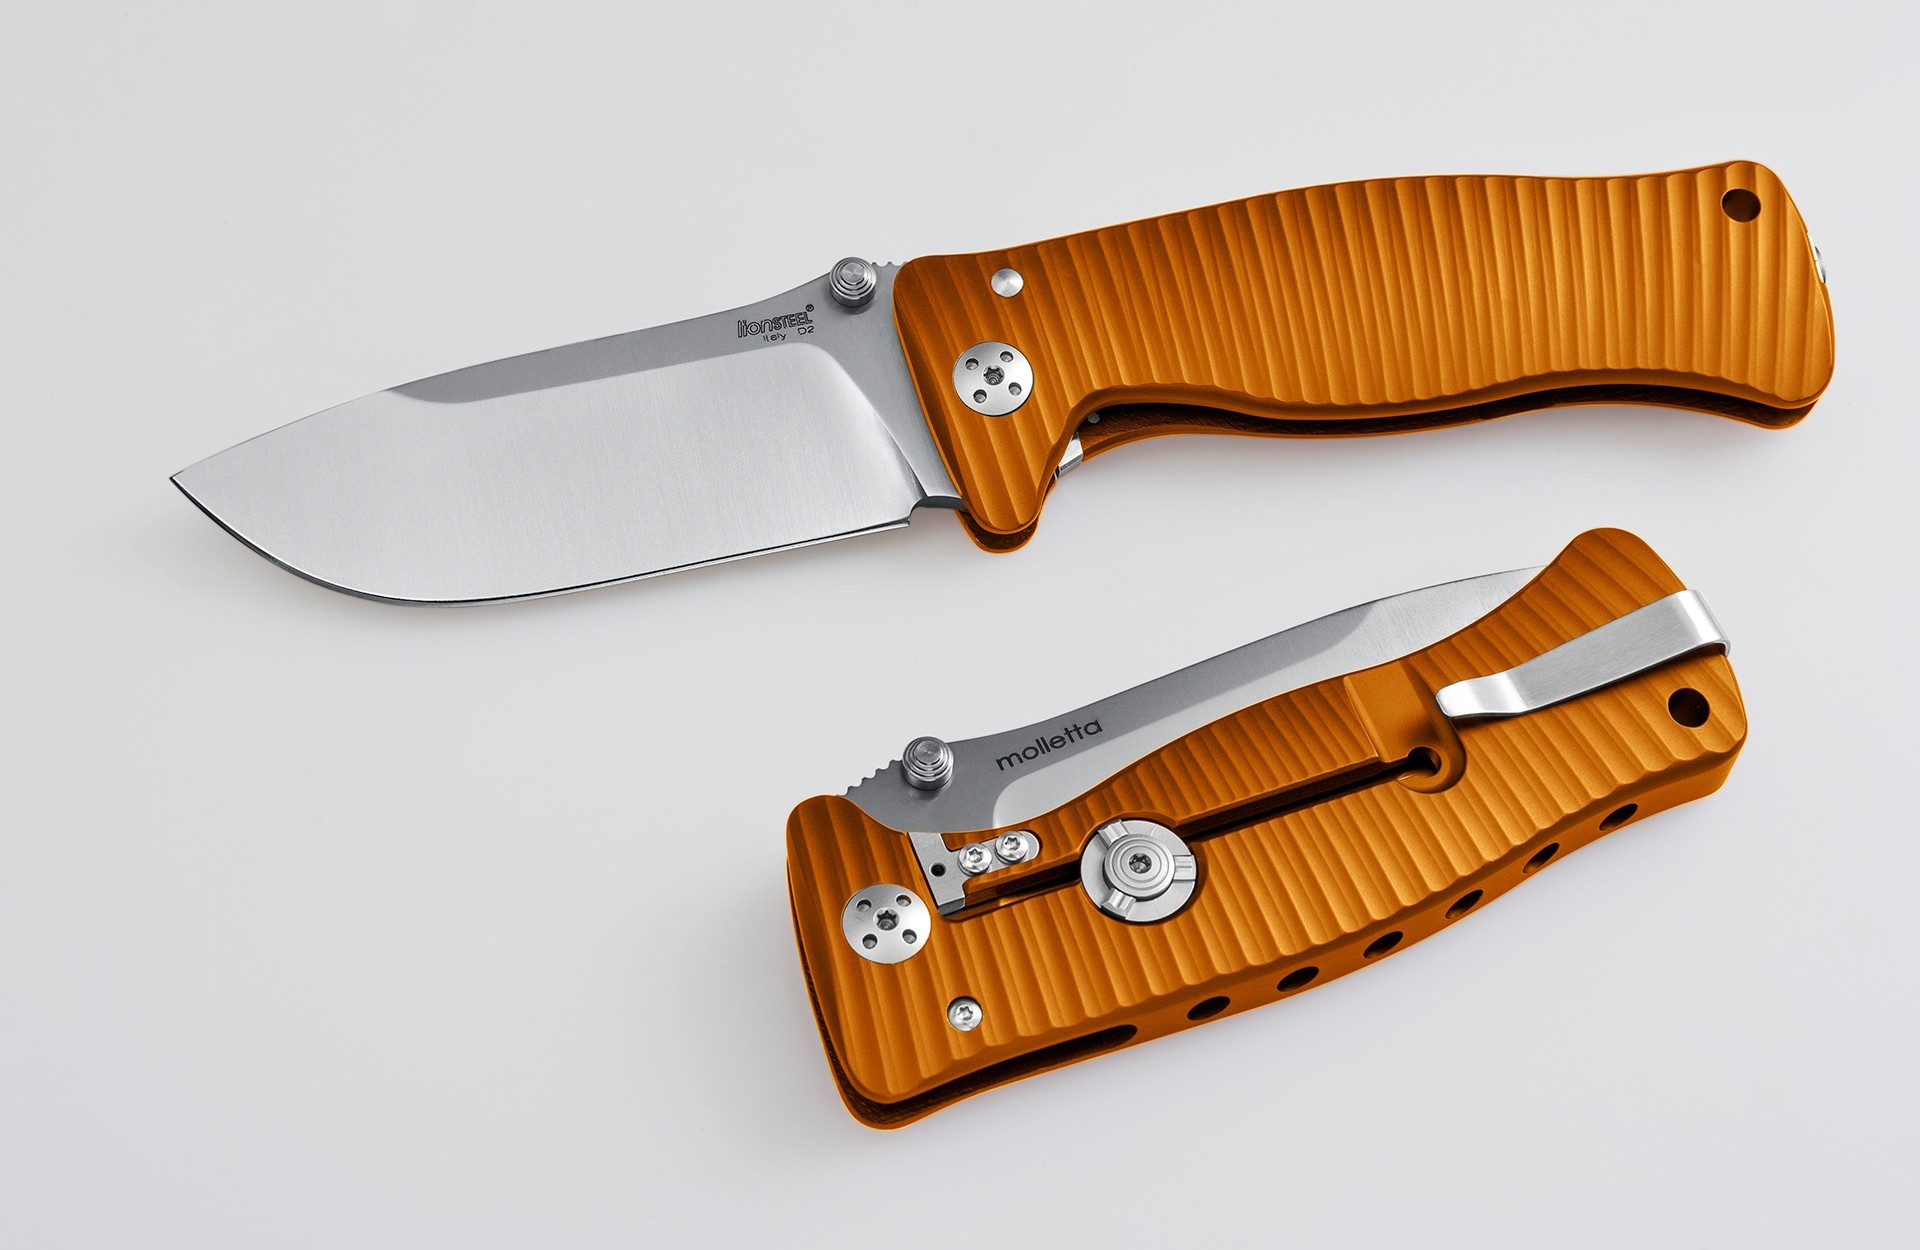 Нож складной SR-1, Solid® Orange Anodized Aluminum Handle, Satin Finish D2 Tool Steel